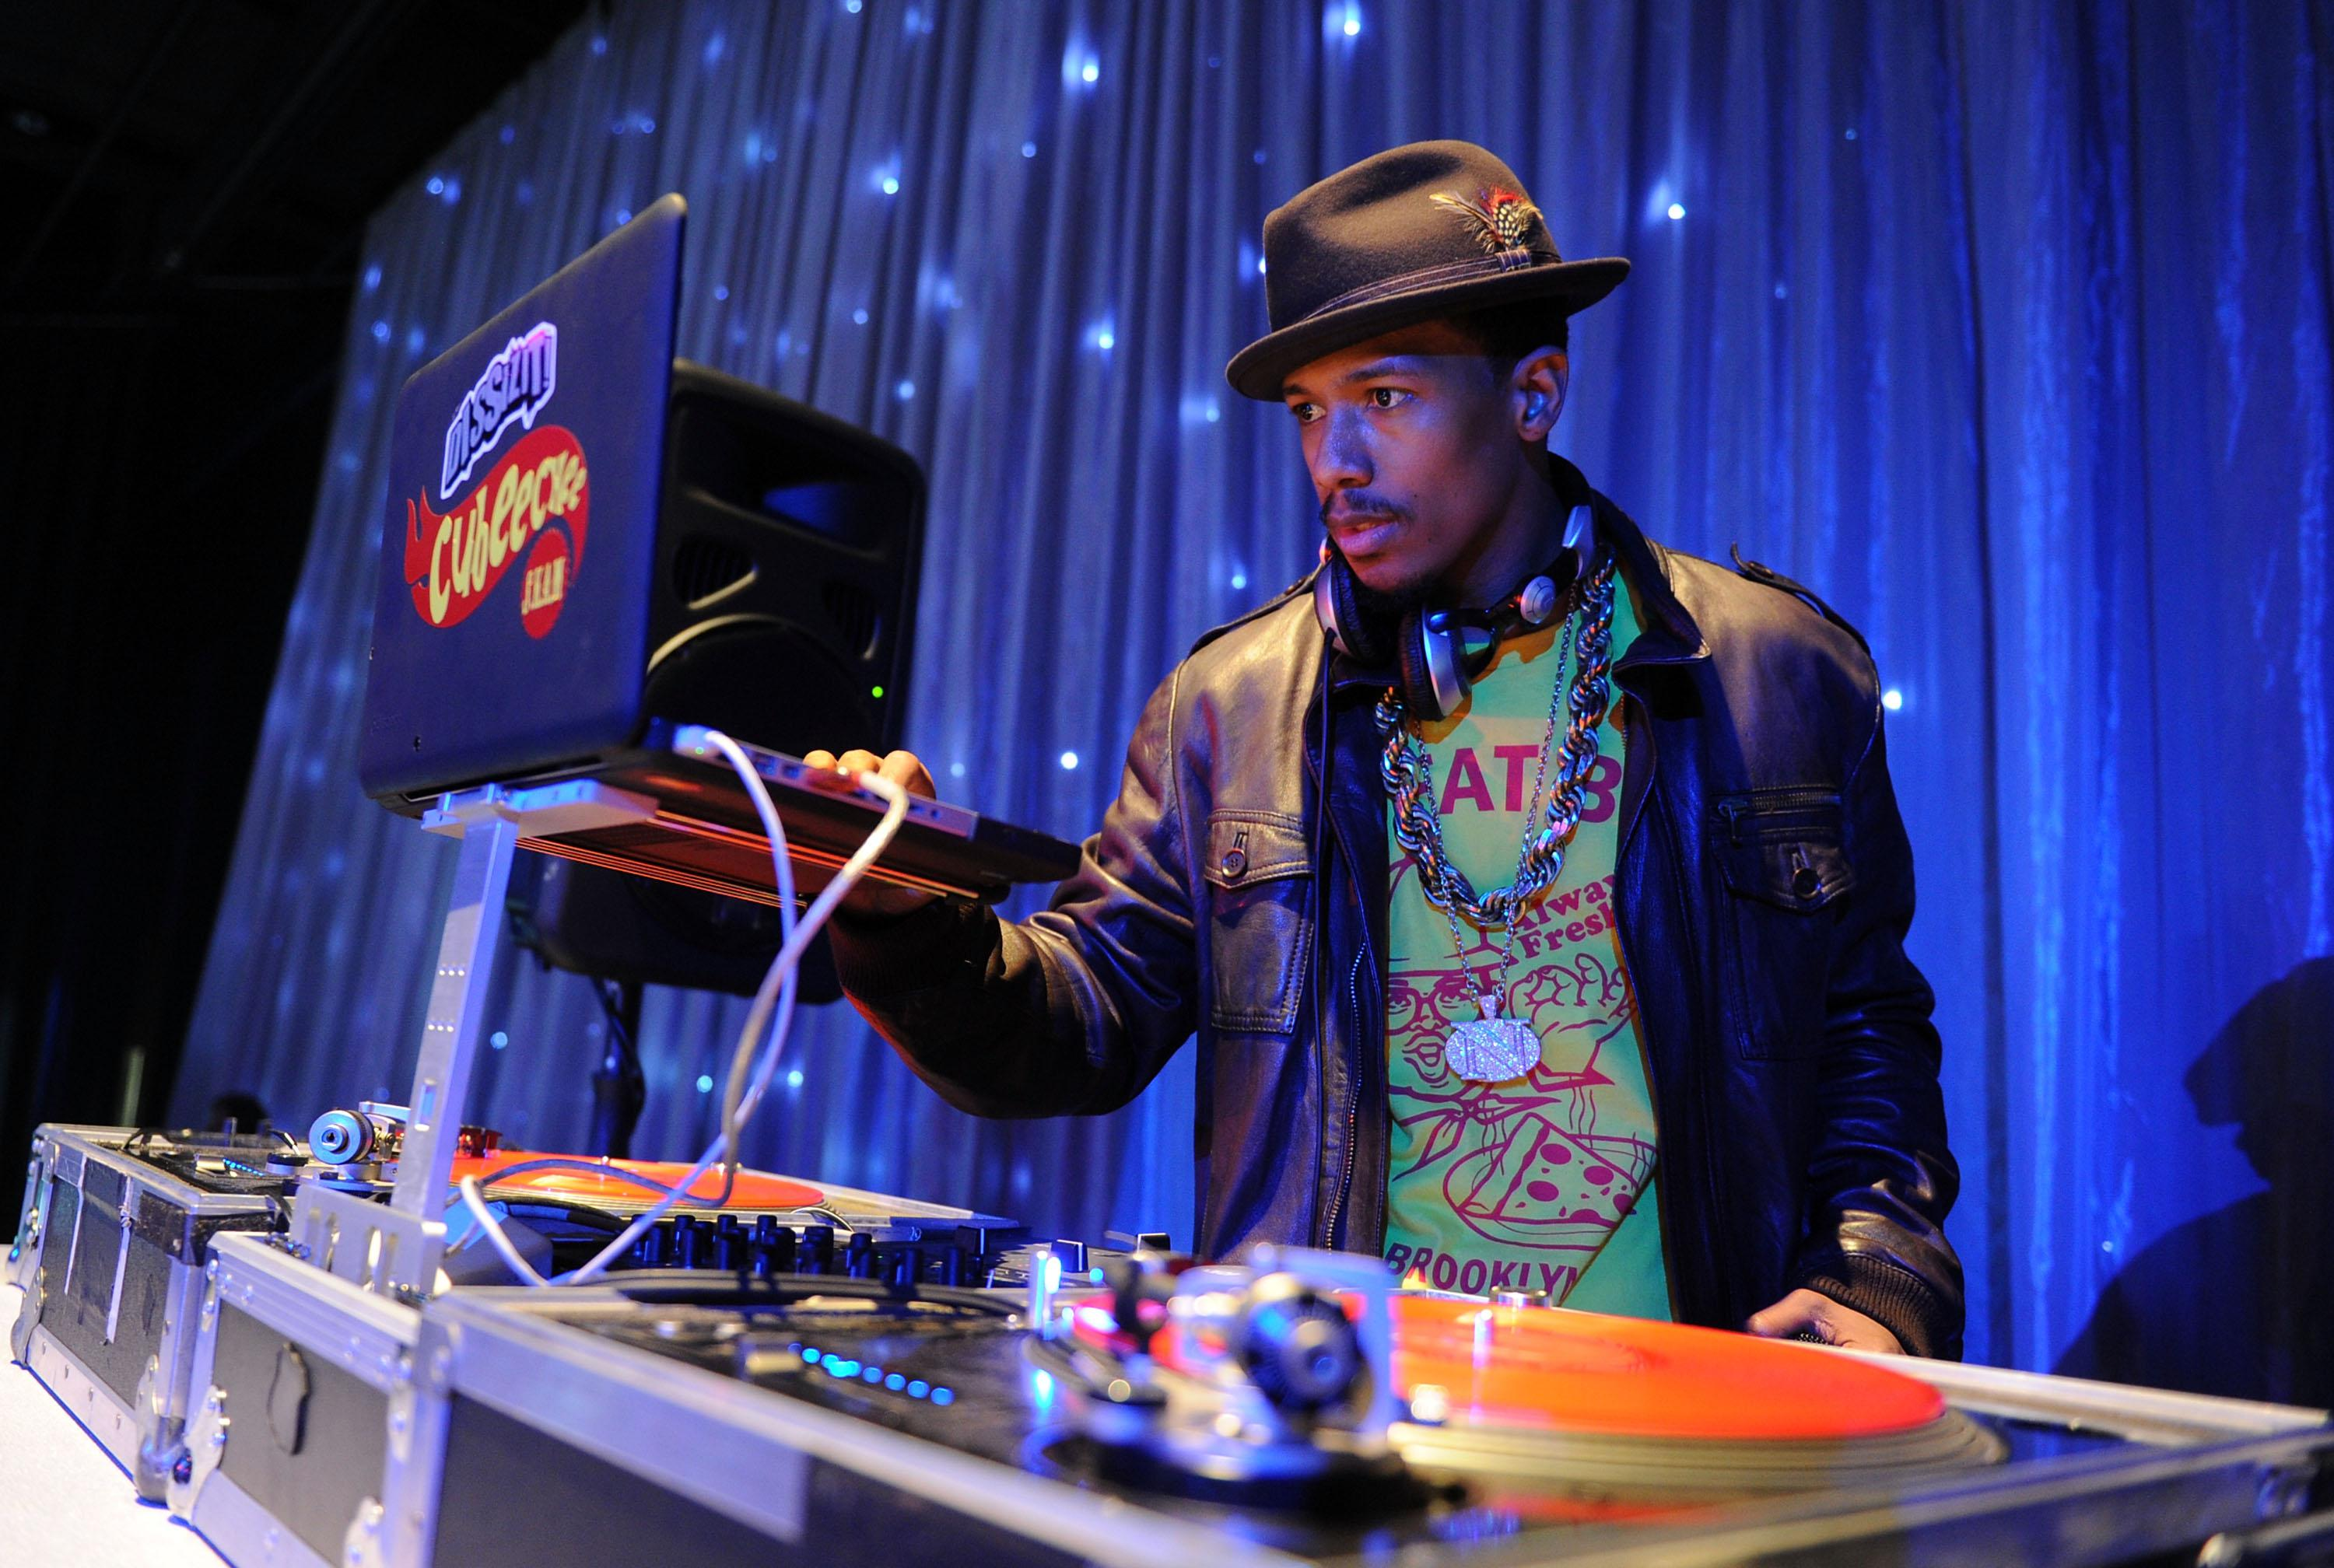 Nick Cannon's 30th Birthday Bash At Universal Studios Hollywood - Inside